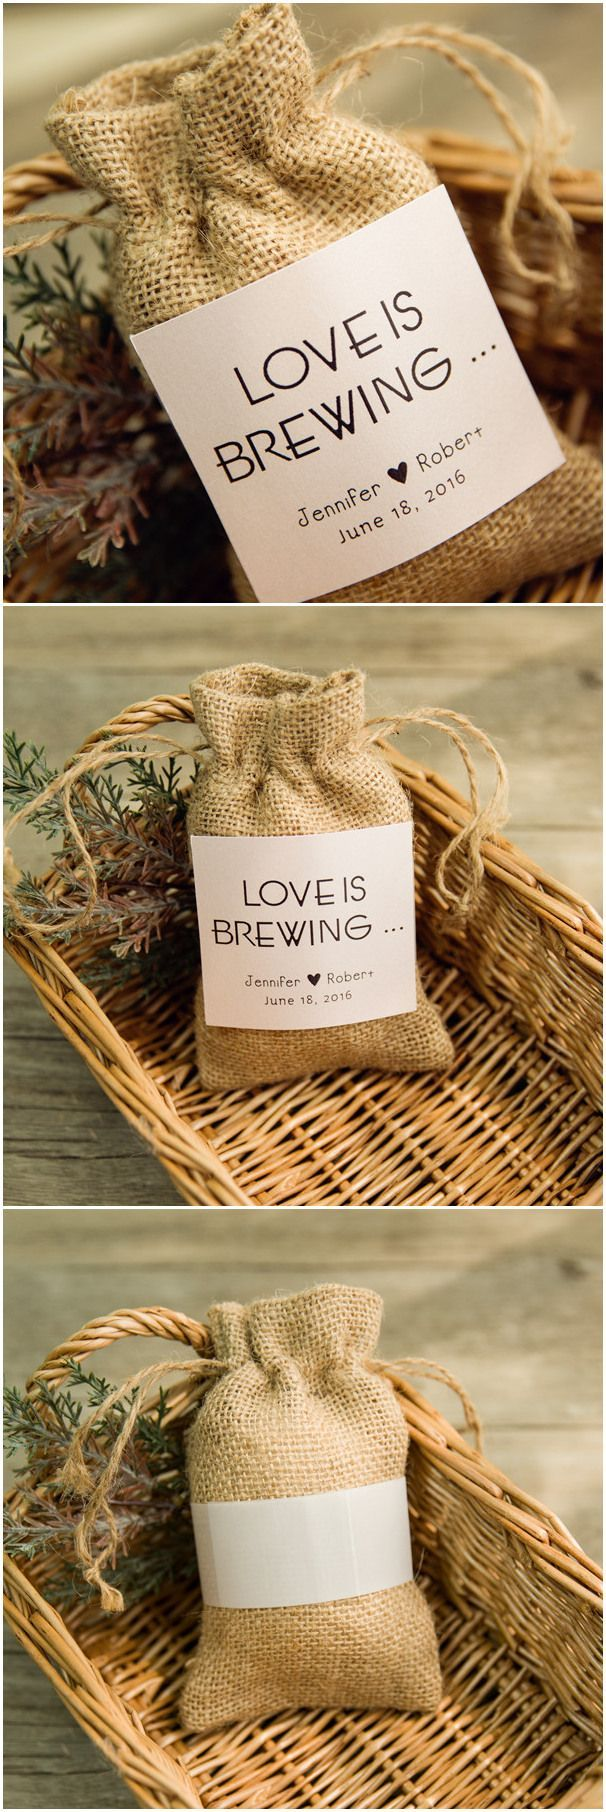 If you're looking for wedding favor ideas for your rustic themed wedding, this chic burlap wedding favor bag will be a good choice. The color of tag is blush pink.